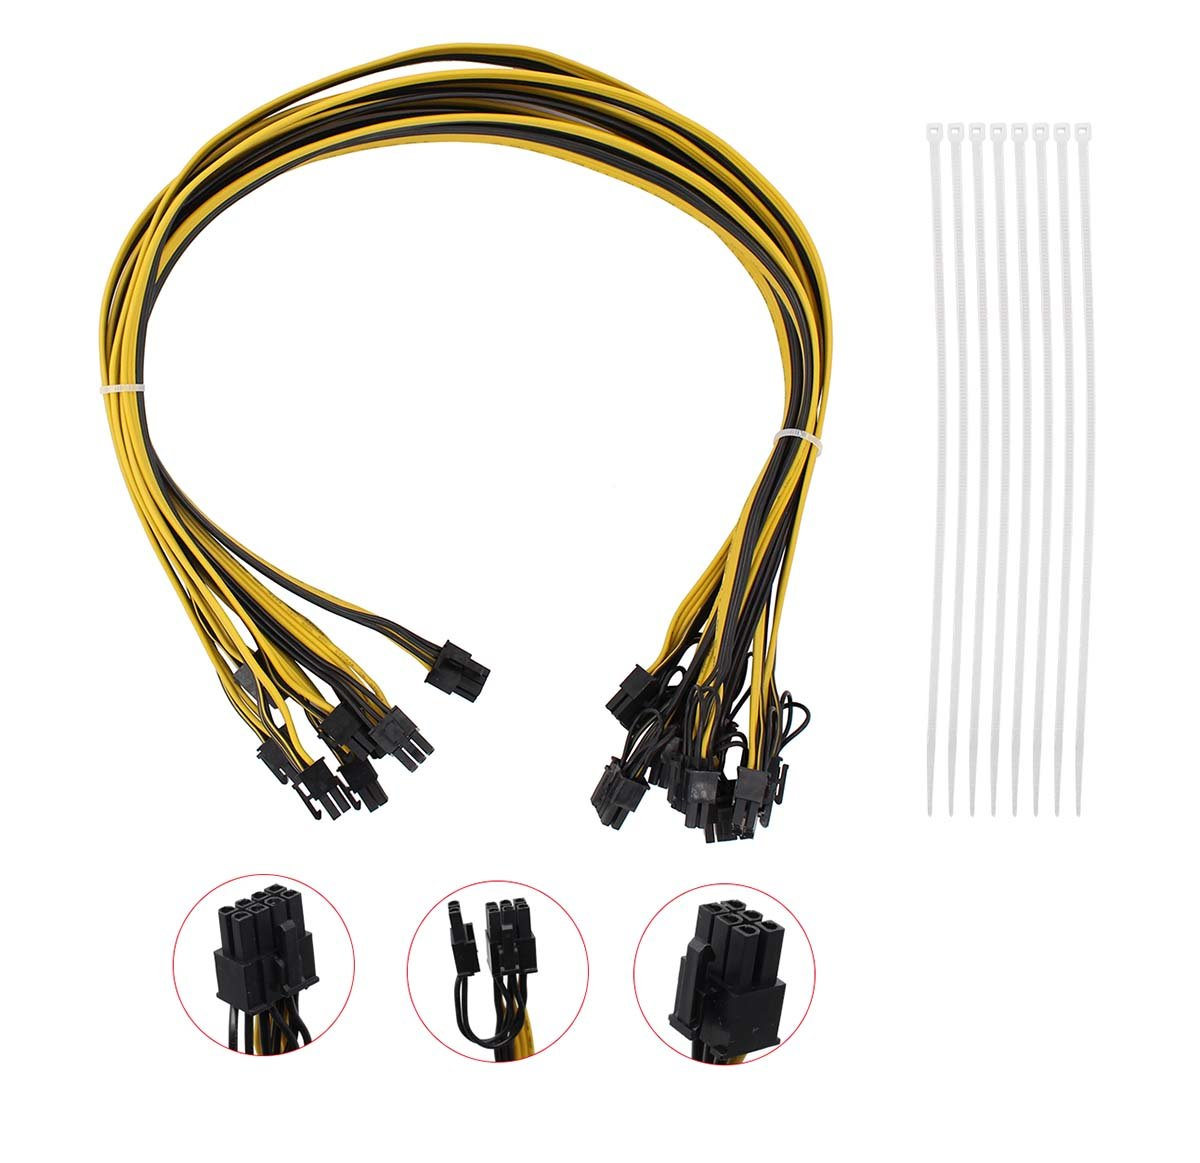 Pack of 8 16AWG 6Pin PCI-E to 8 (6+2) Pin Male to Male Power Extension Cable 27.5'' Inch/70CM for GPU/PSU Breakout Board Ethereum ETH Mining Rigs Power Supply + Nylon Cable Ties